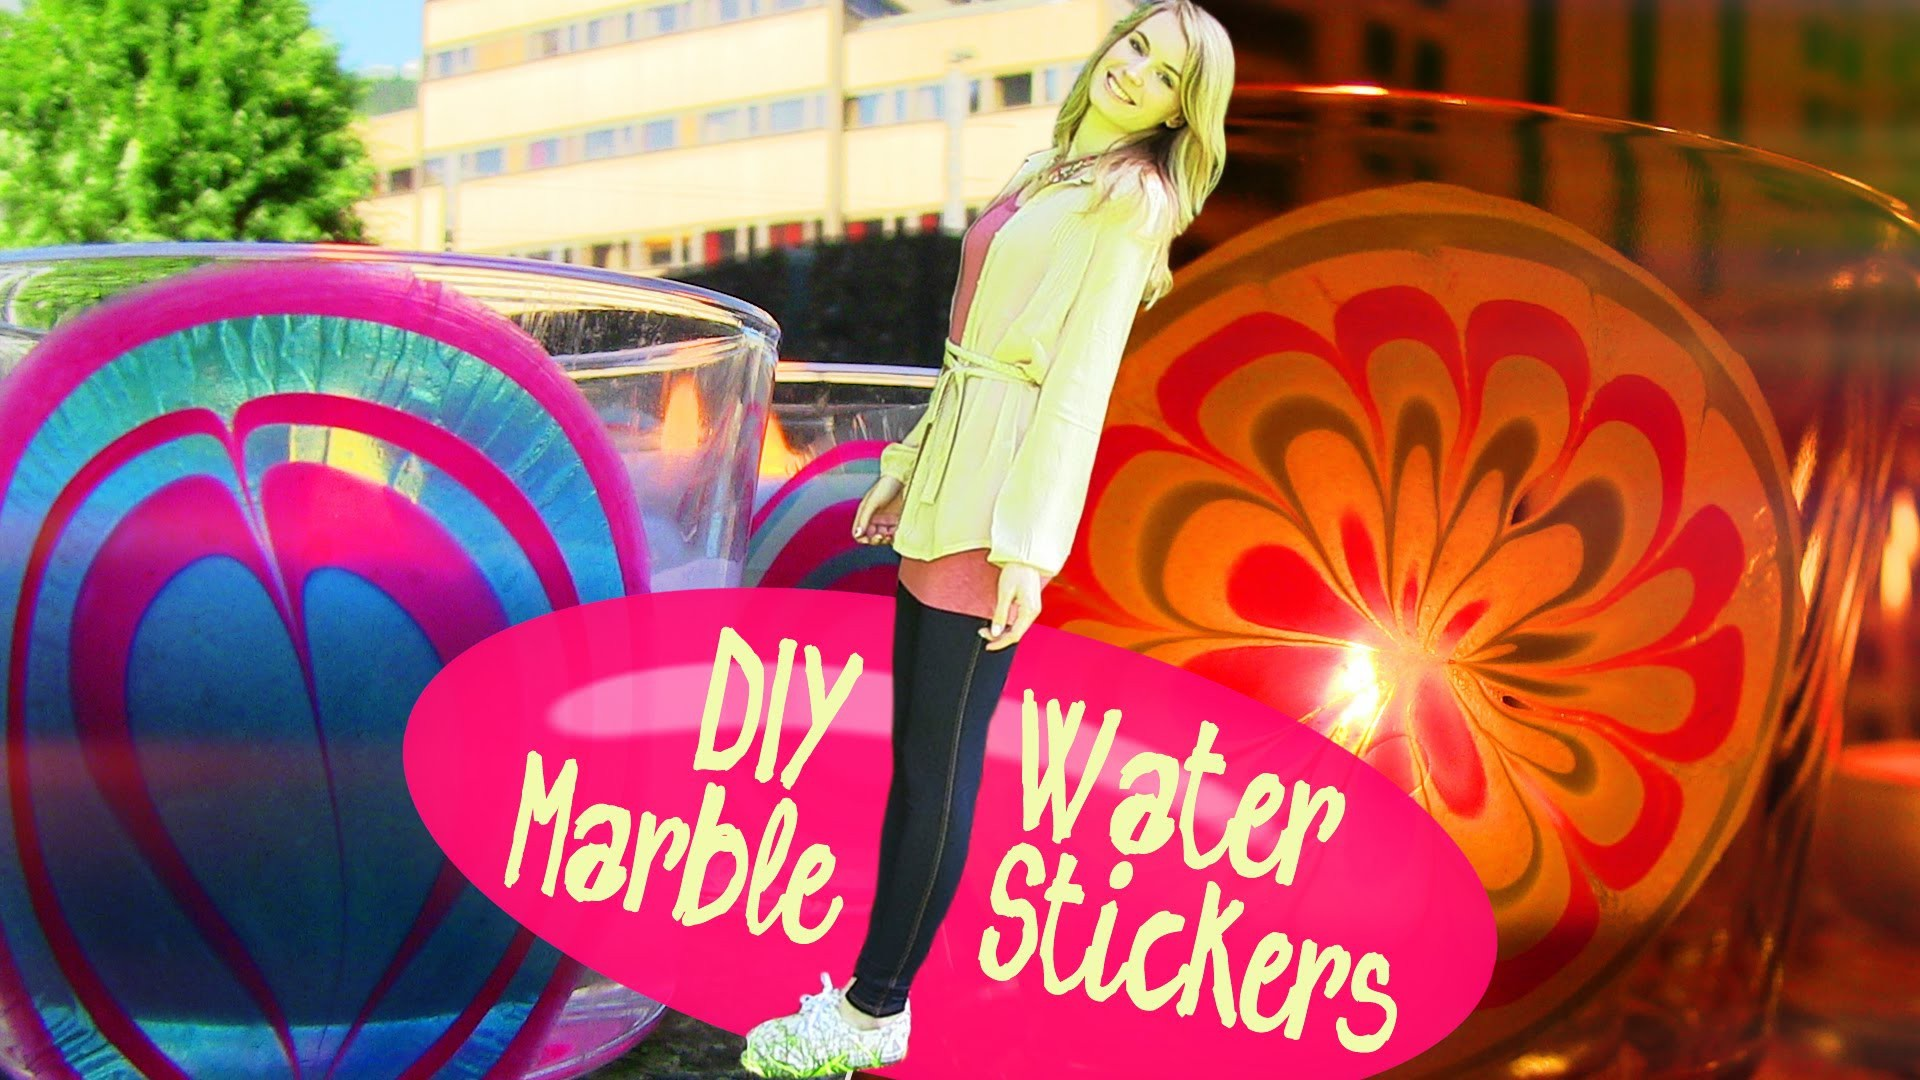 DIY Water Marble Room Decor. How to Make Stickers at Home!